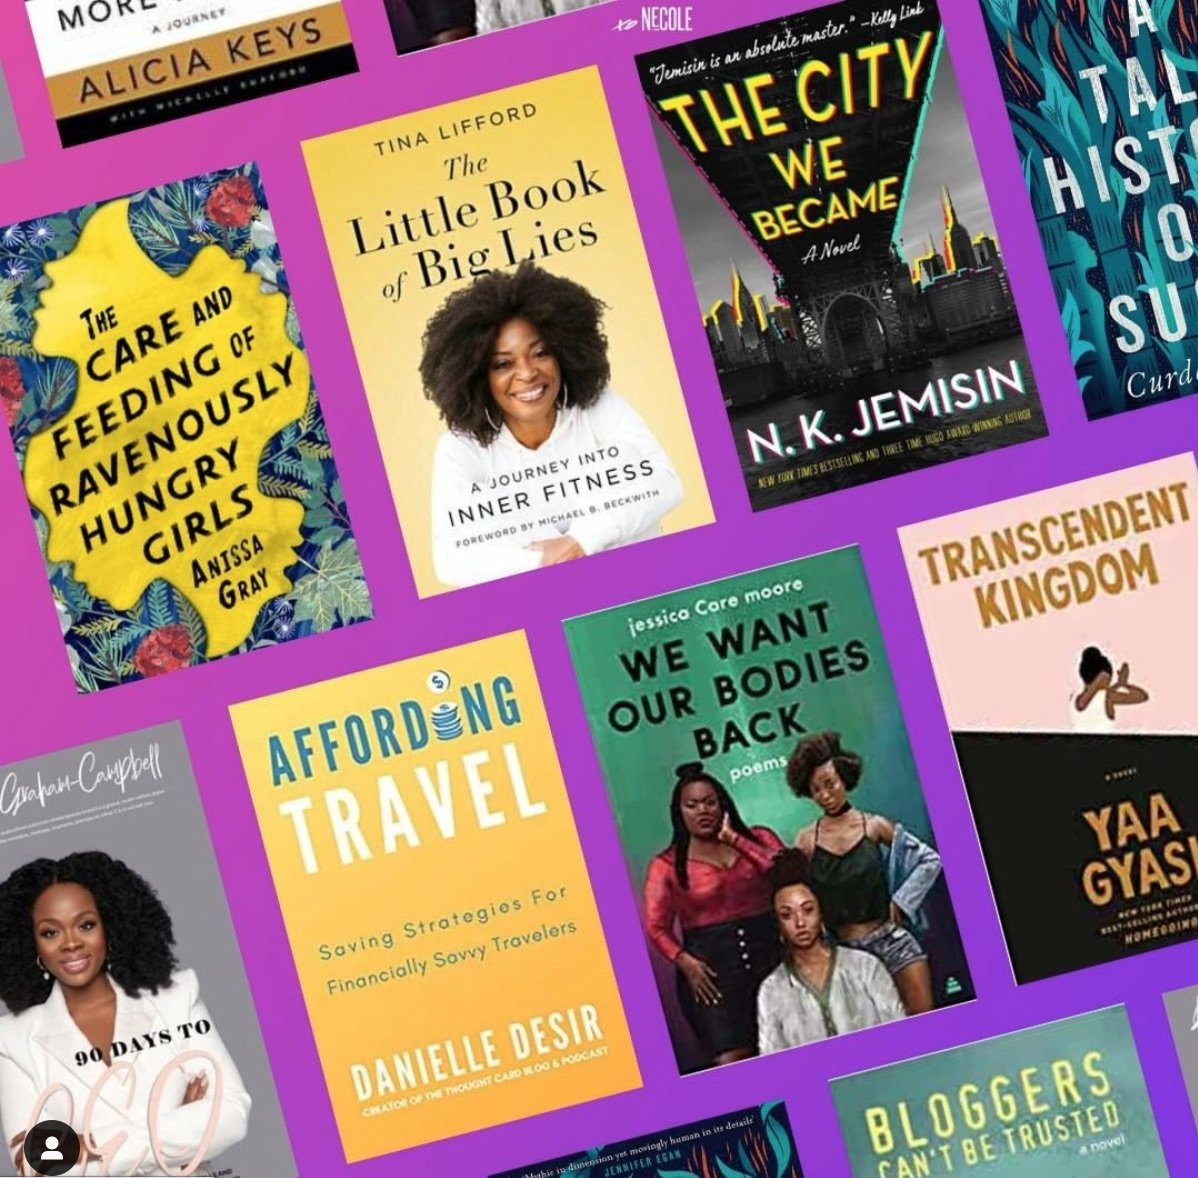 Affording Travel featured on xoNecole.com's summer reading list by Black authors.